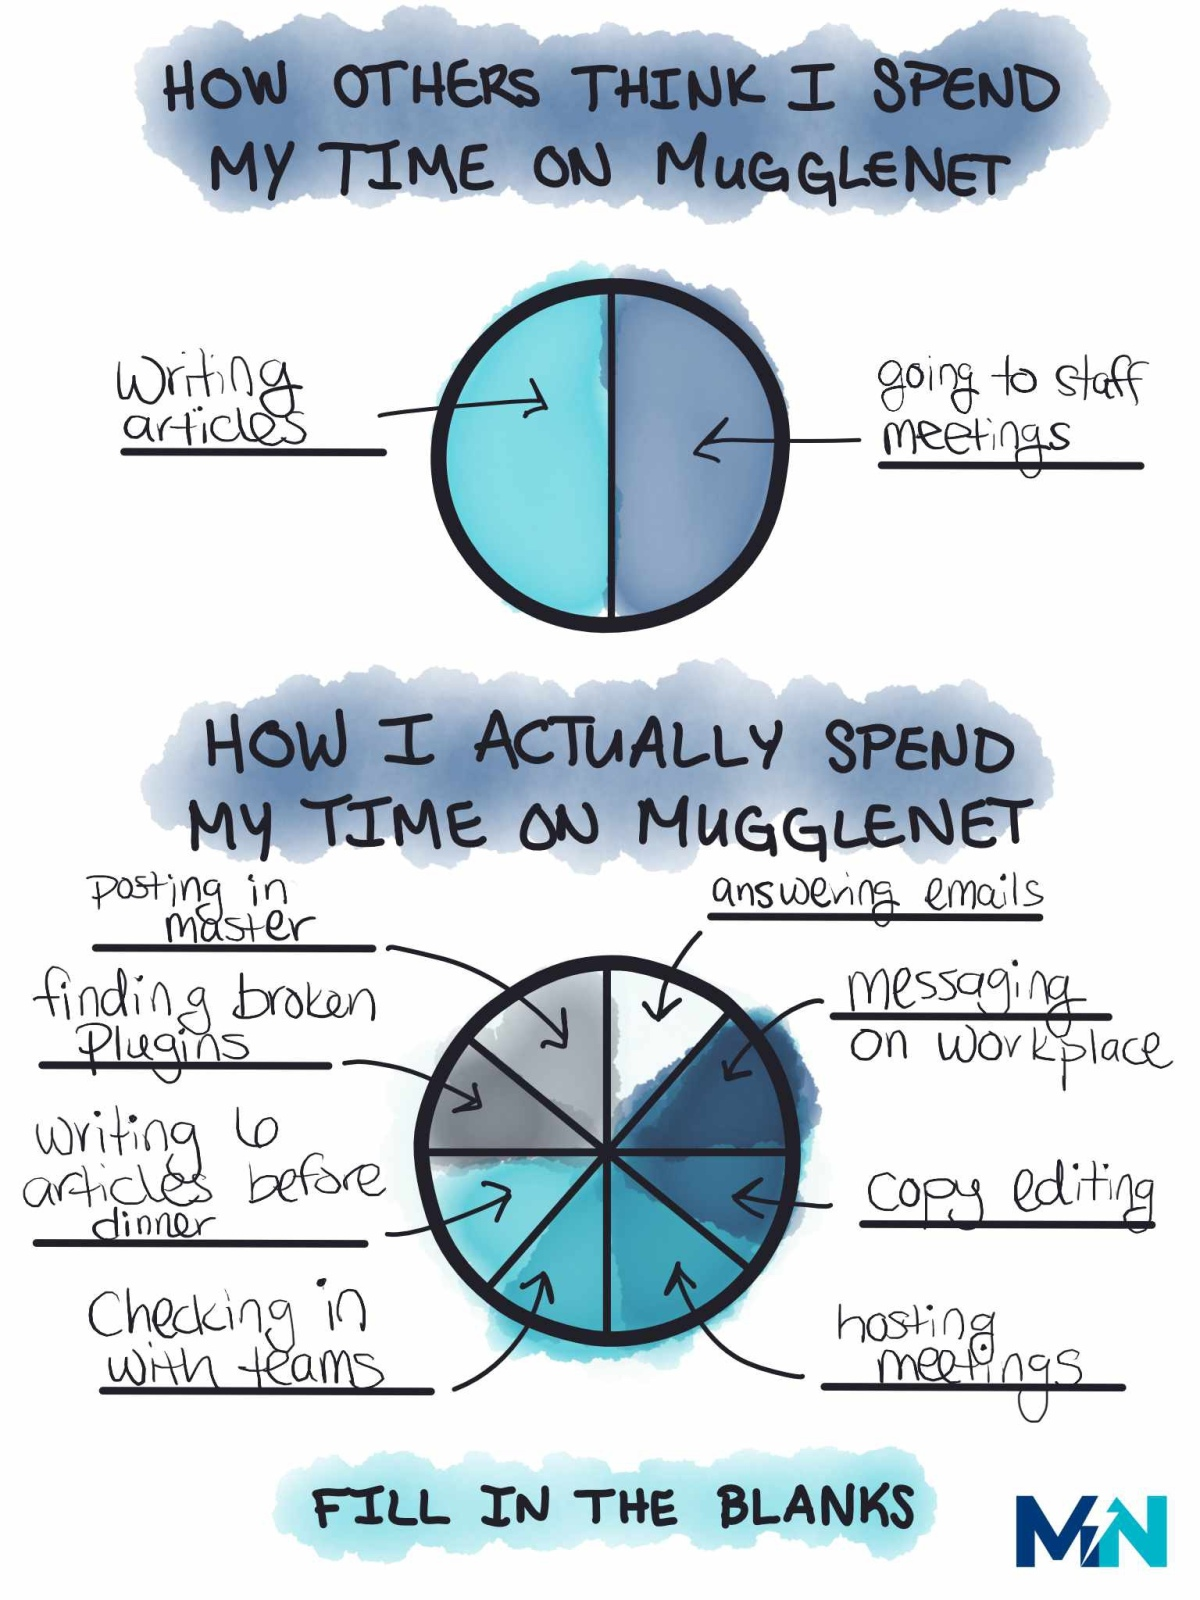 this is a graphic with two filled out pie charts. the goal of this graphic was to be an example of how to fill out the blank graphic for mugglenet staff. the top circle was filled out with how staff thinks I spend my time, and the bottom graphic was how staff actually spends time. fun little staff game for mugglenet.